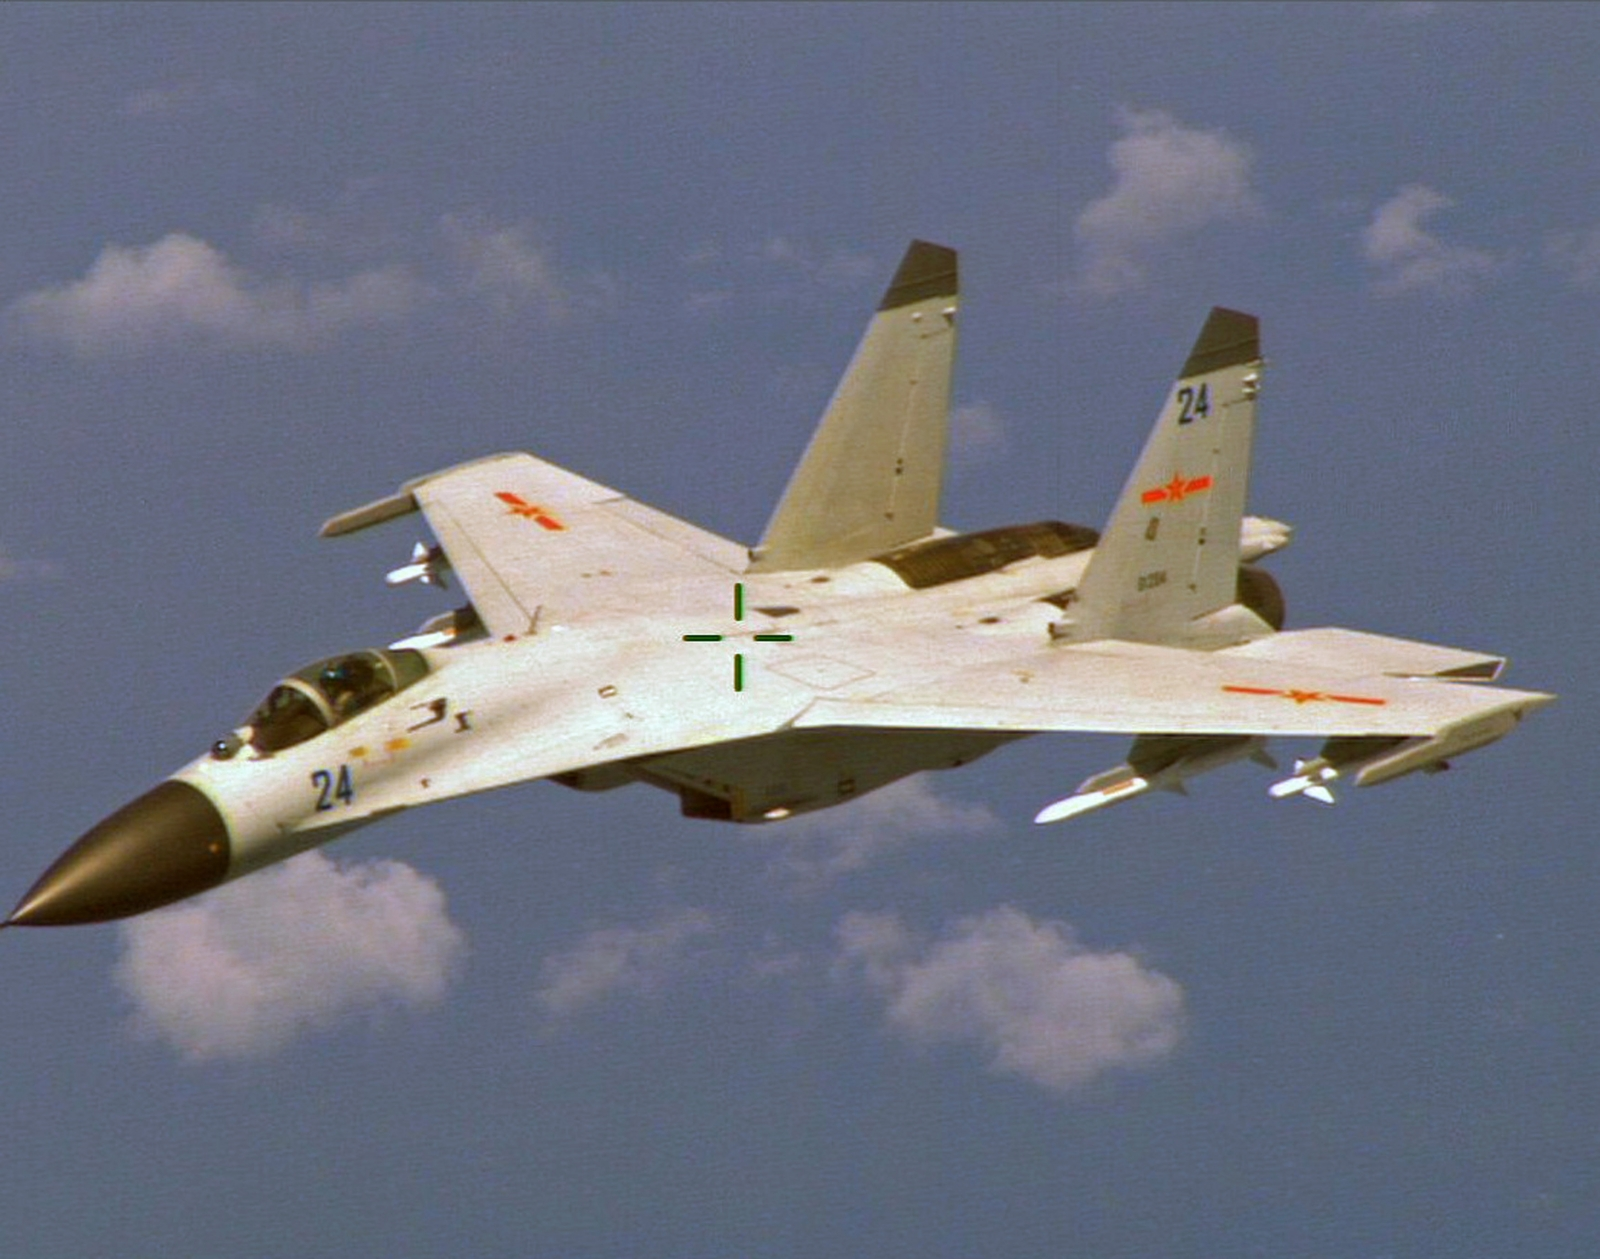 Chinese J-11 fighter jet